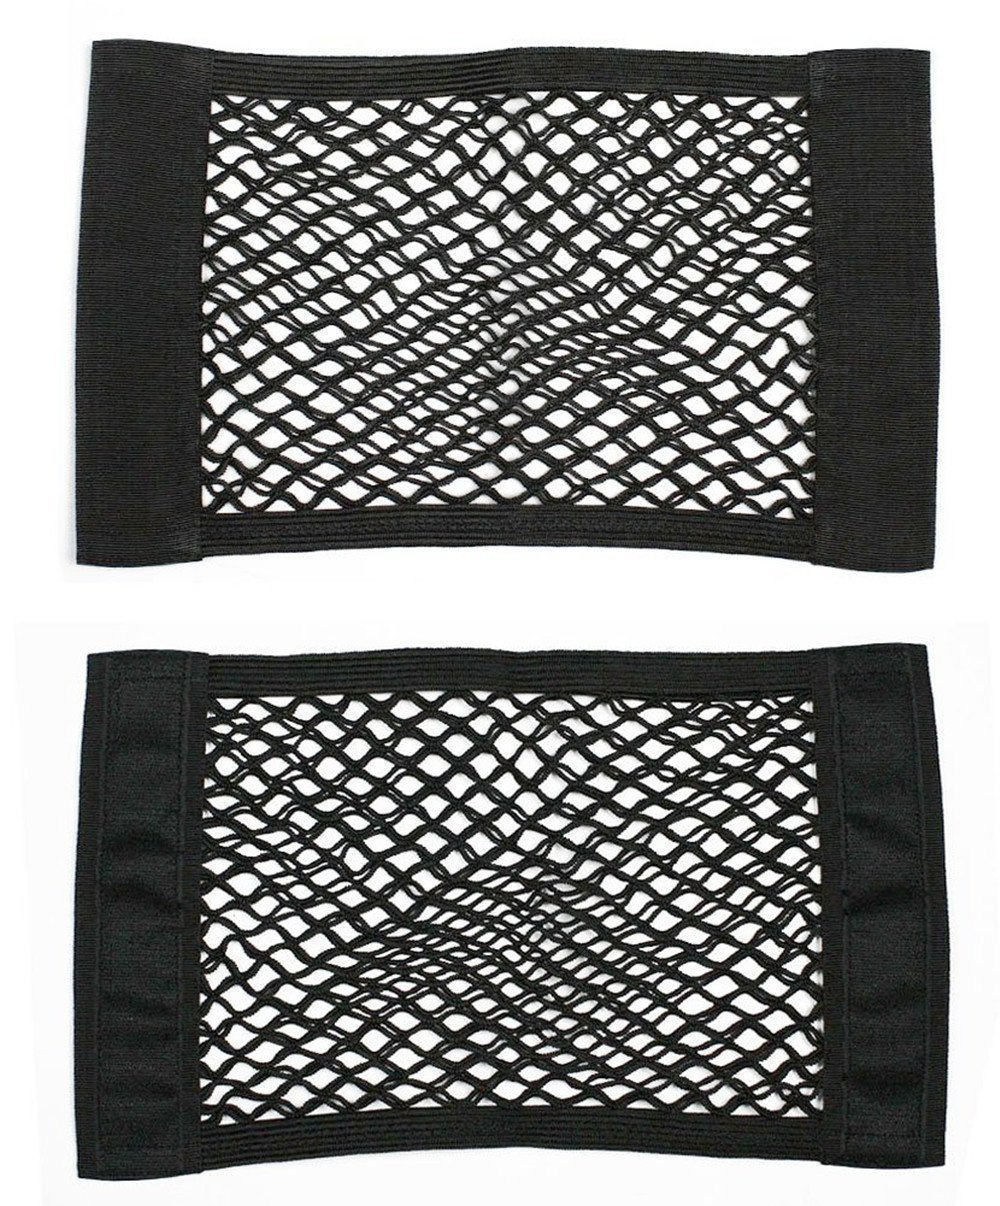 Wommty 3-Layer Car Mesh Organizer, Seat Back Net Bag, Barrier of Backseat Pet Kids, Cargo Tissue Purse Holder, Driver Storage Netting Pouch Wommty EU